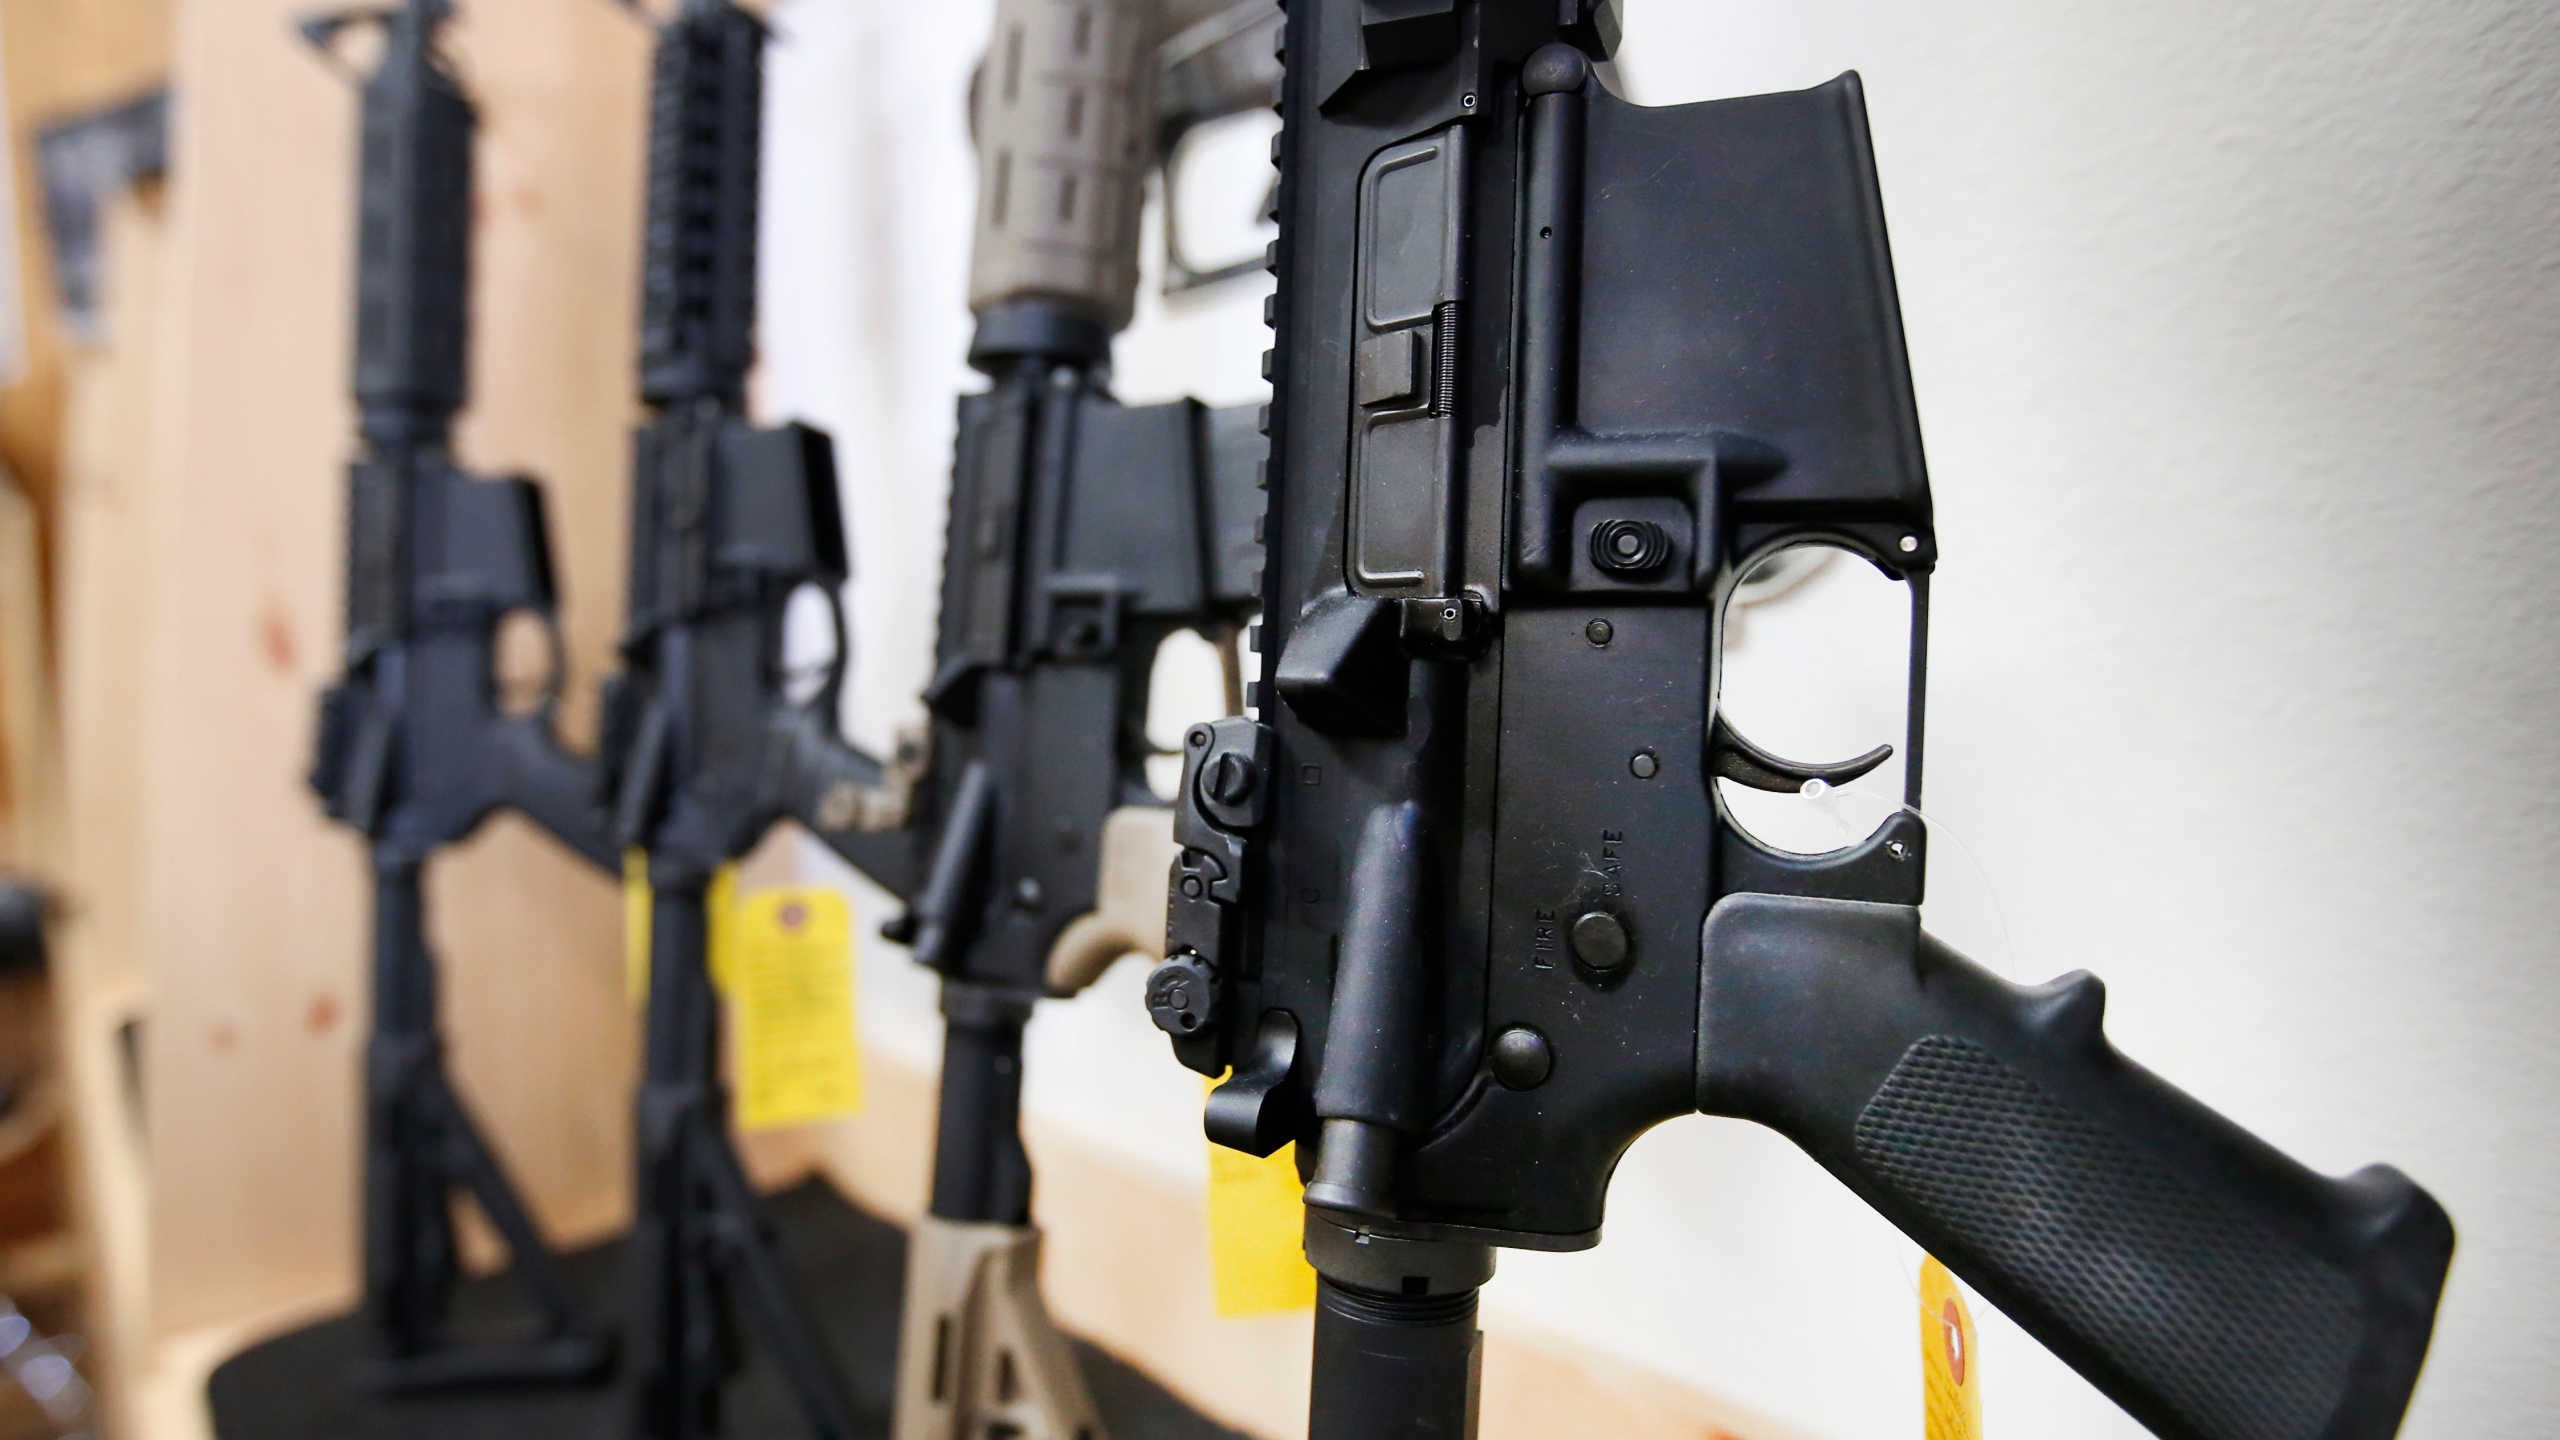 AR-15 semi-automatic guns are on display for sale at on June 17, 2016 in Springville, Utah. (George Frey/Getty Images)